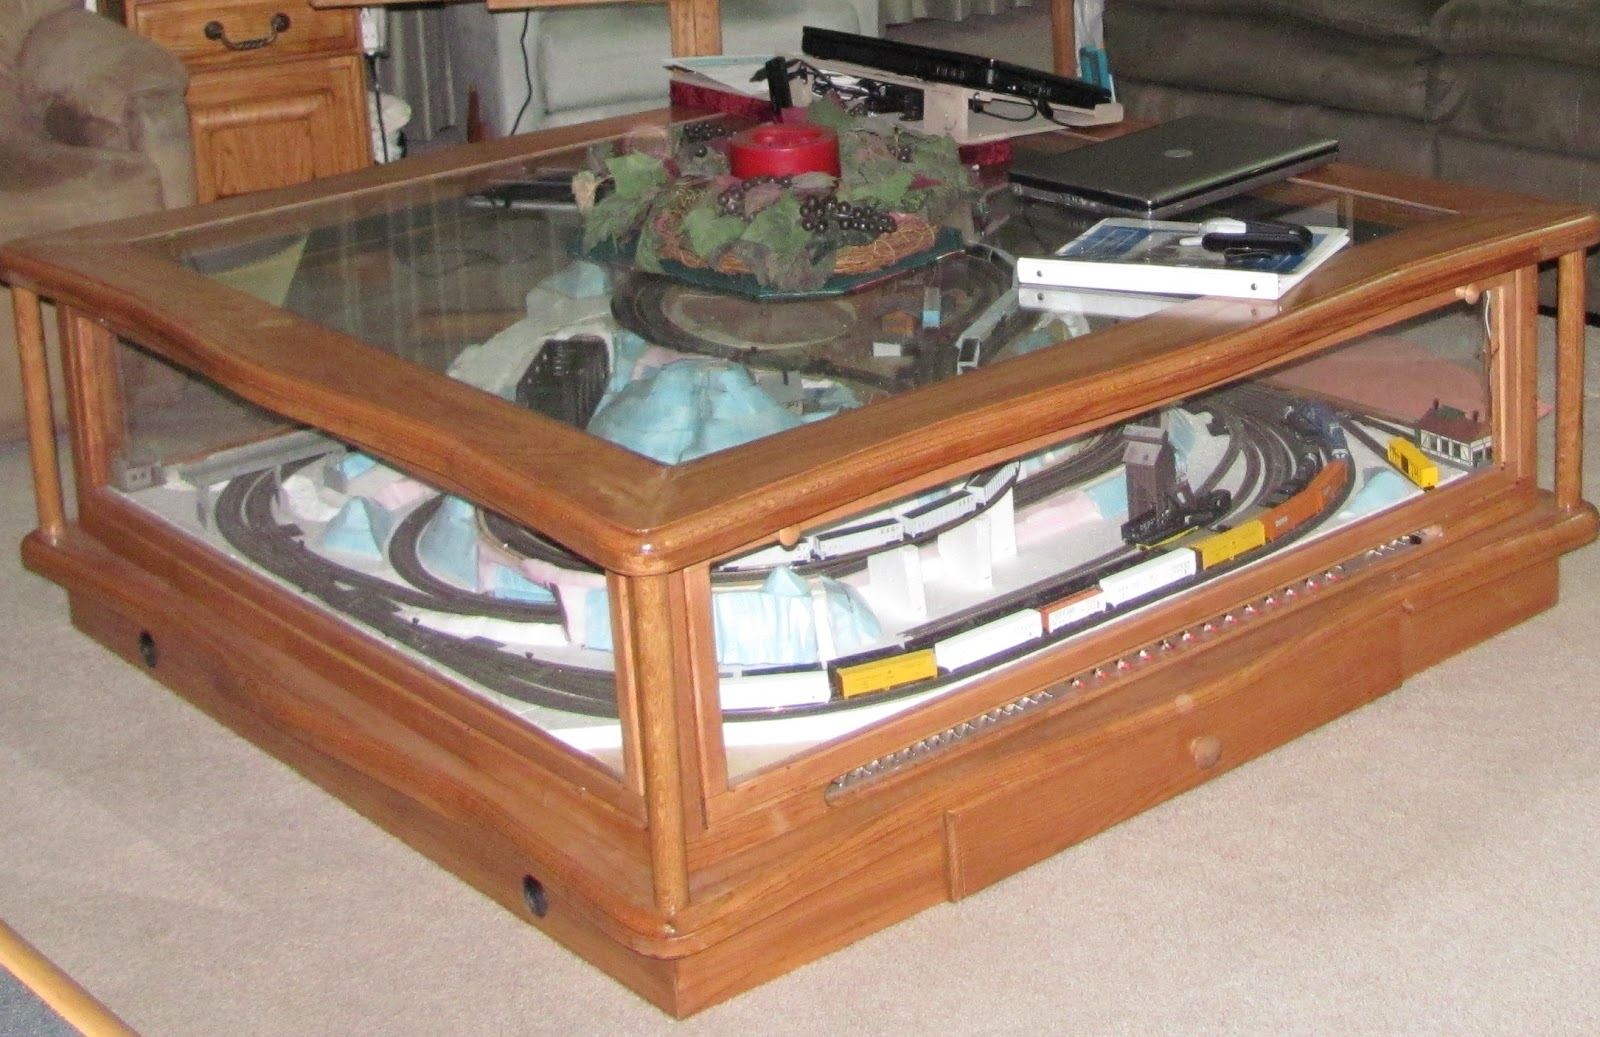 download model train coffee table plans pdf moddi murphy bed kitpdfwoodplans